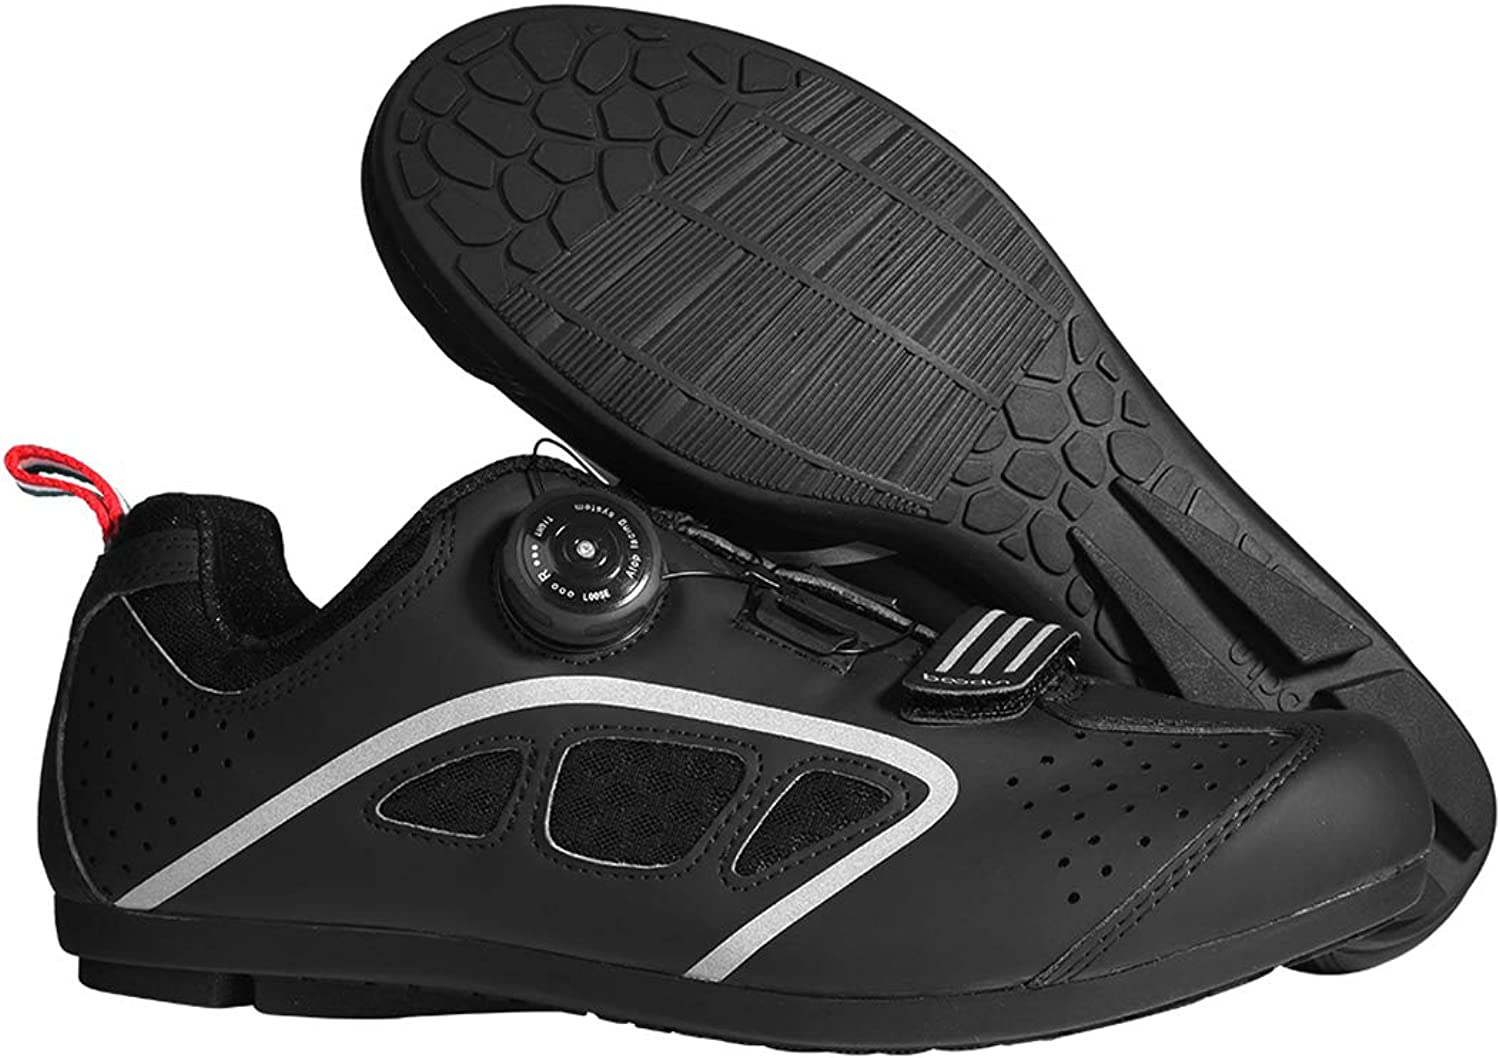 UBCA-BOODUN Breathable Men Cycling shoes Pro Self-Locking Bicycle Road Sneakers MTB Zapato